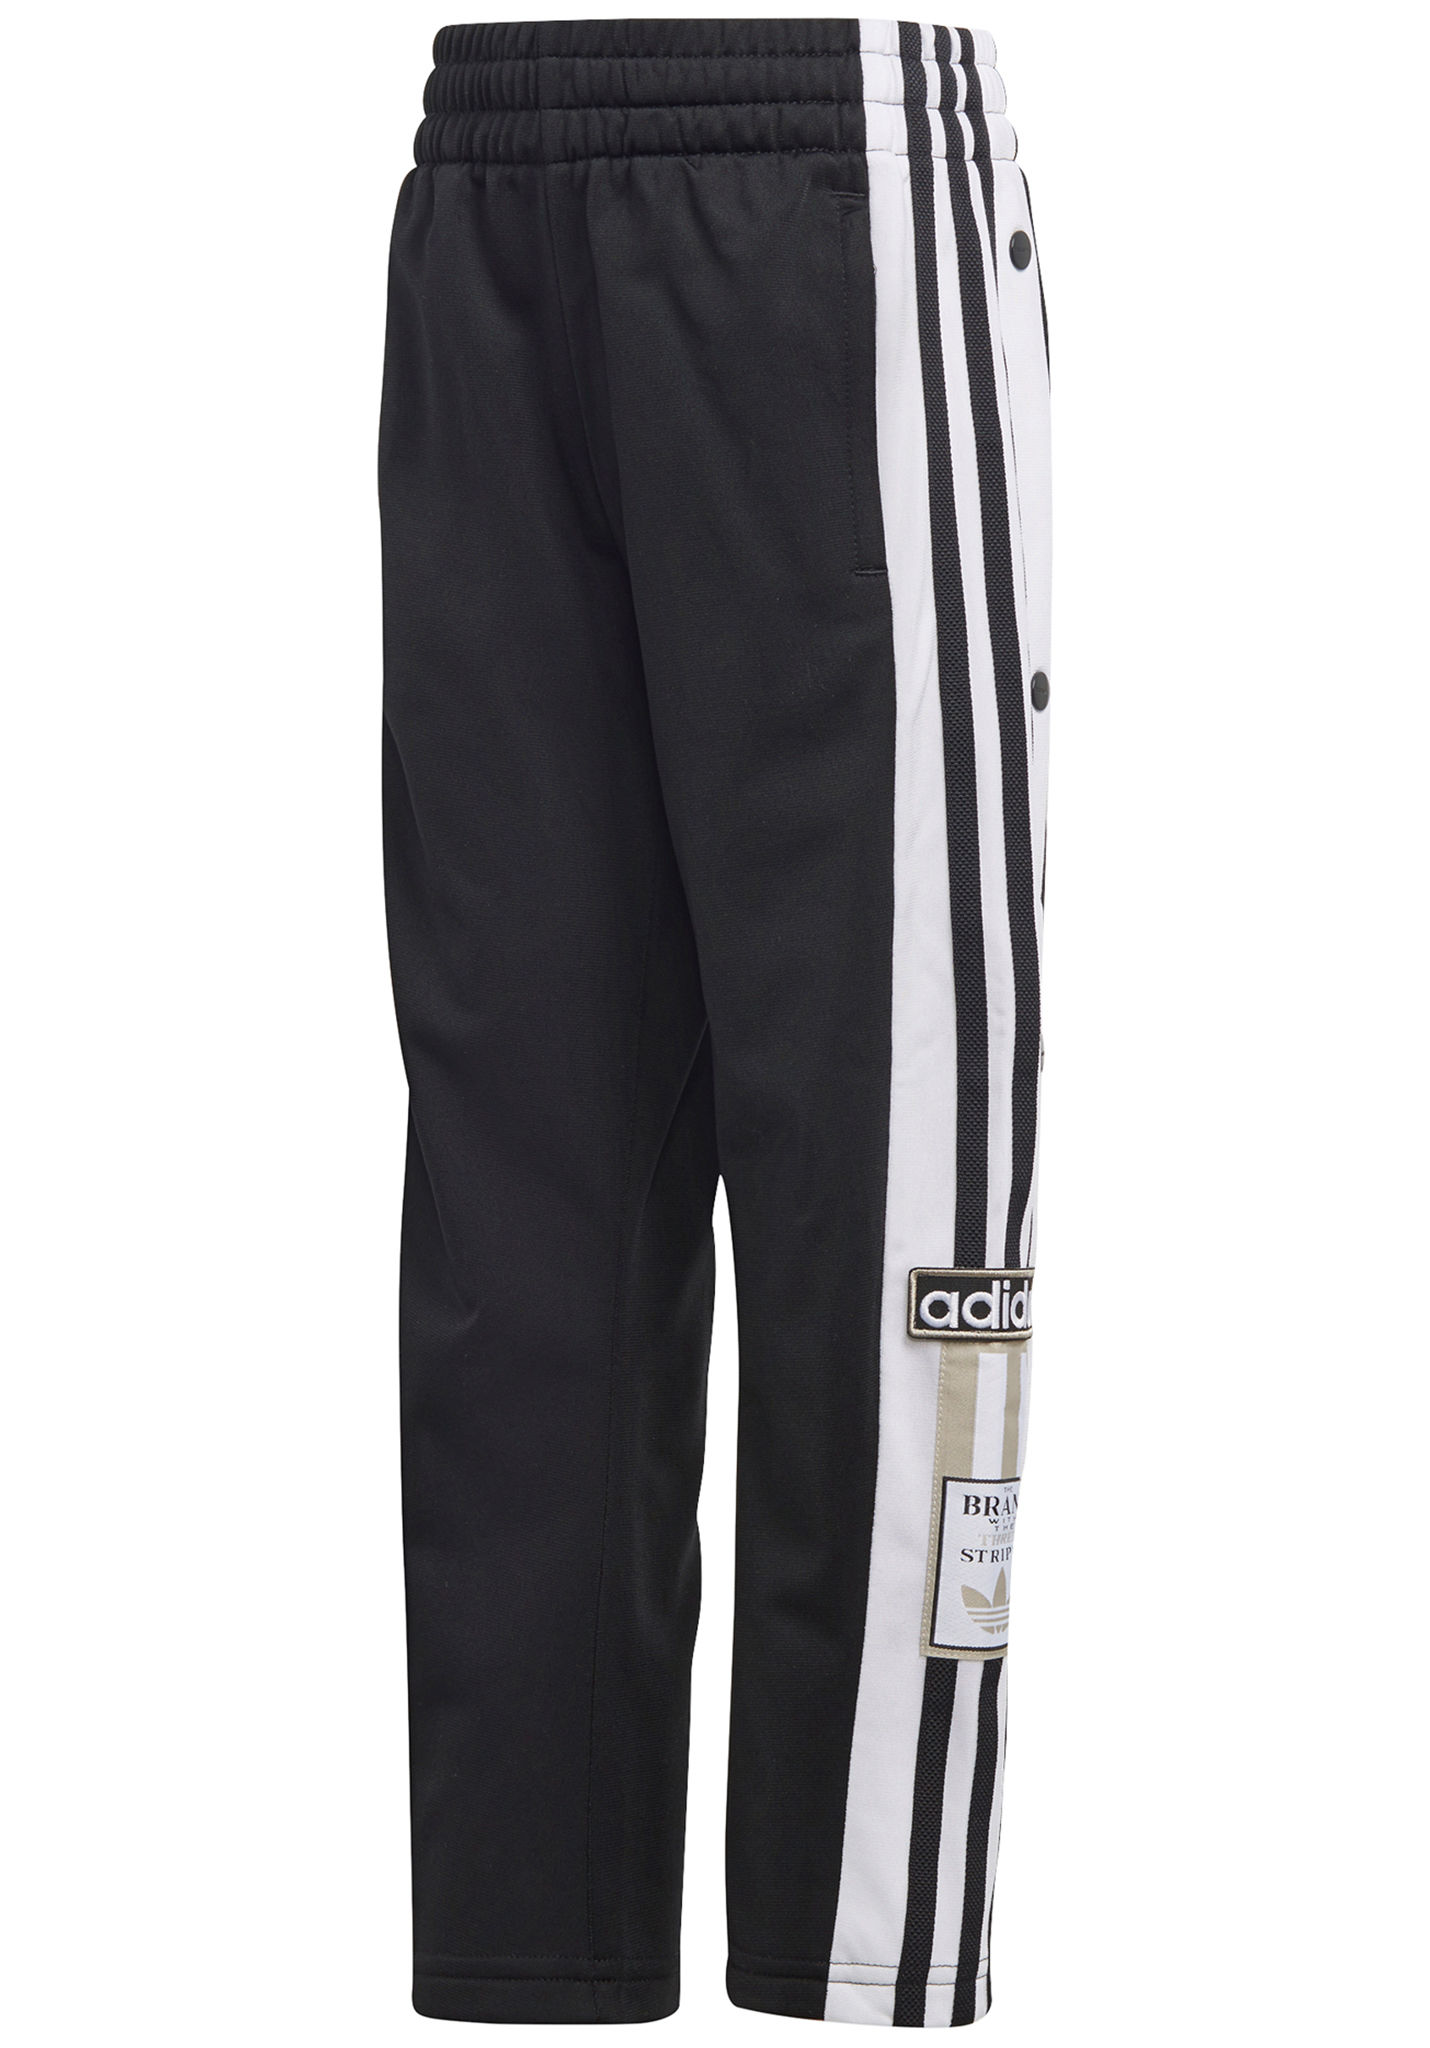 b8509cf8e9e ADIDAS ORIGINALS Adibreak - Trainingsbroek - Zwart - Planet Sports